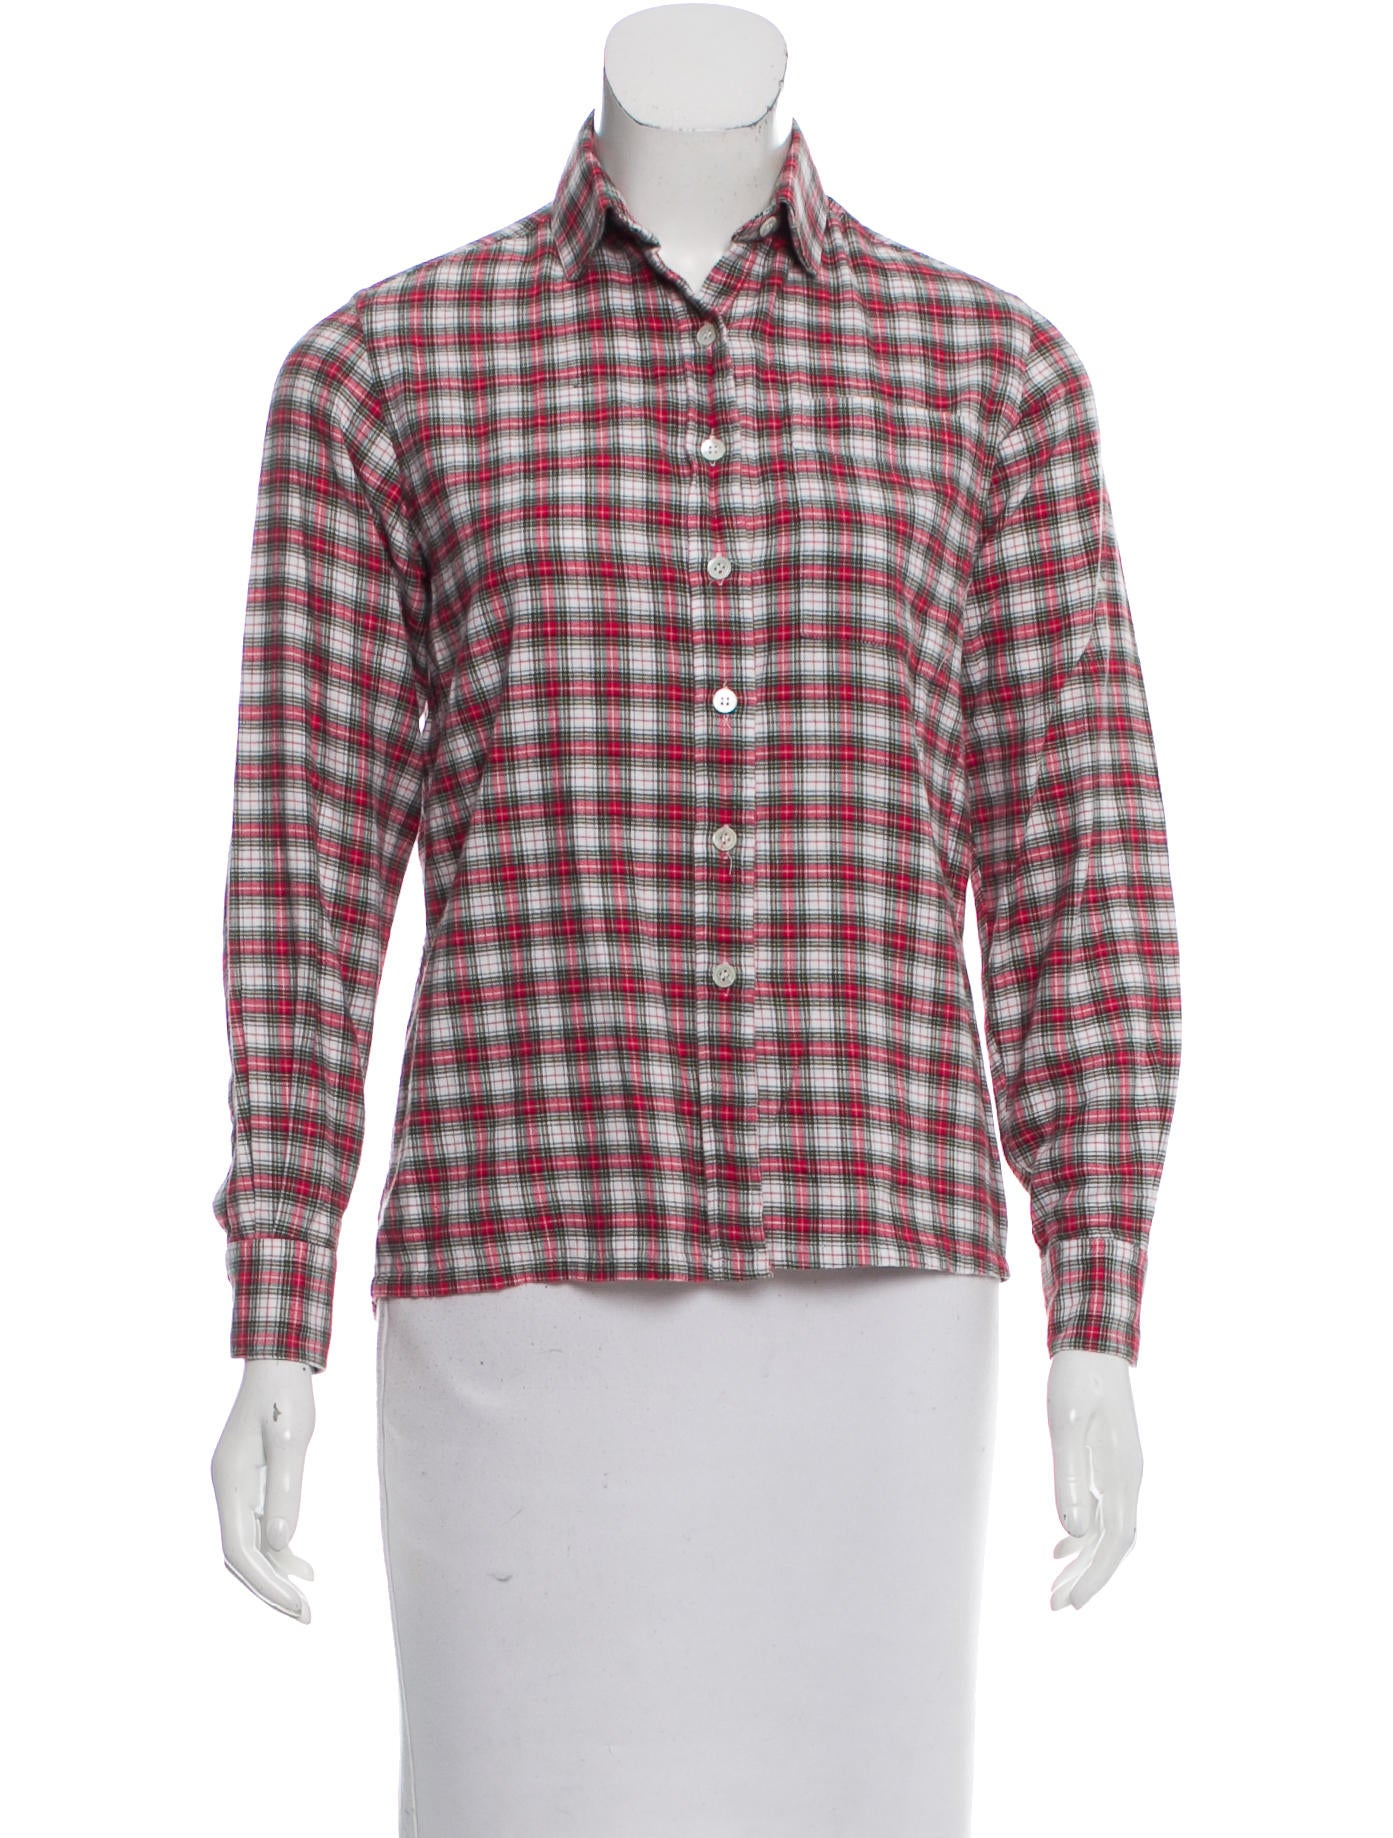 Christian dior plaid button up top clothing chr56771 for Christian dior button up shirt